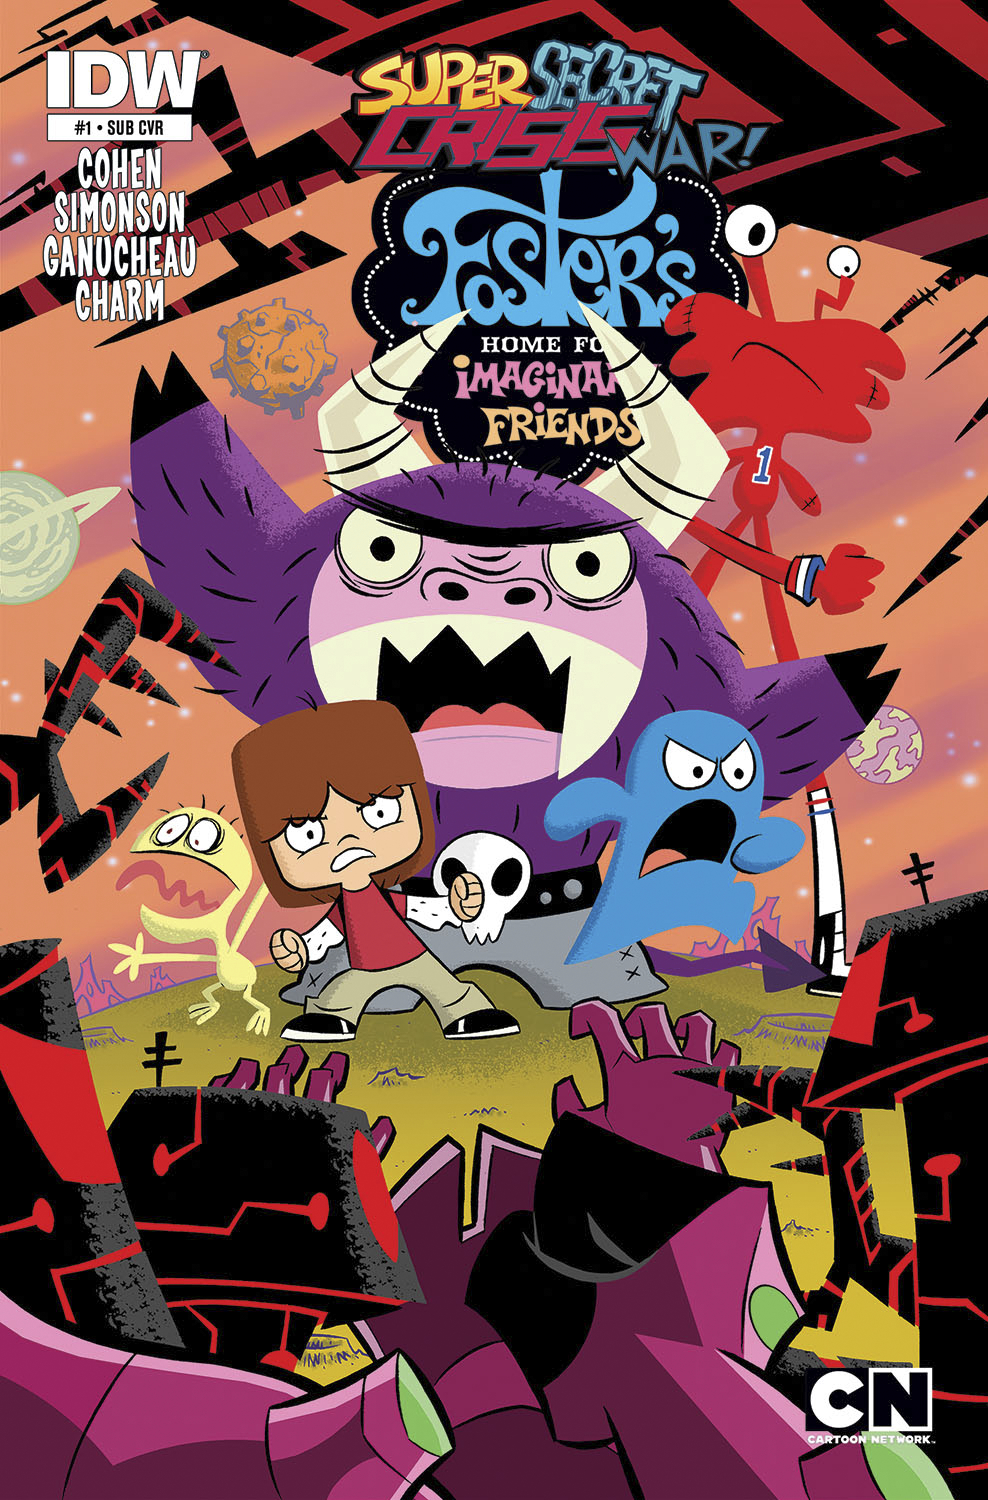 SSCW FOSTERS HOME FOR IMAGINARY FRIENDS #1 SUBSCRIPTION VAR